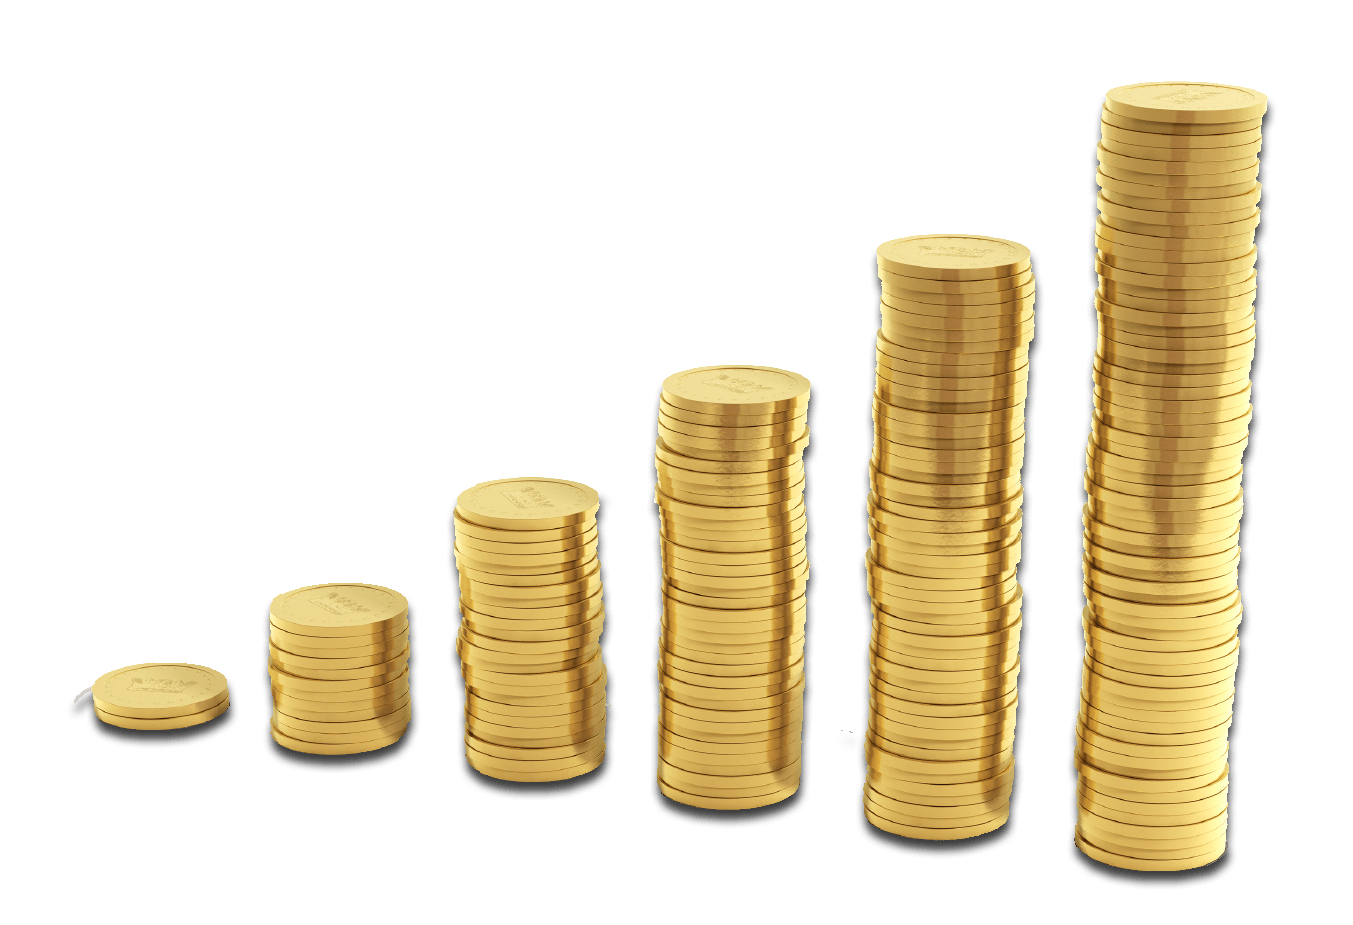 Free clipart money stacks image Stacks Of Coins transparent PNG - StickPNG image